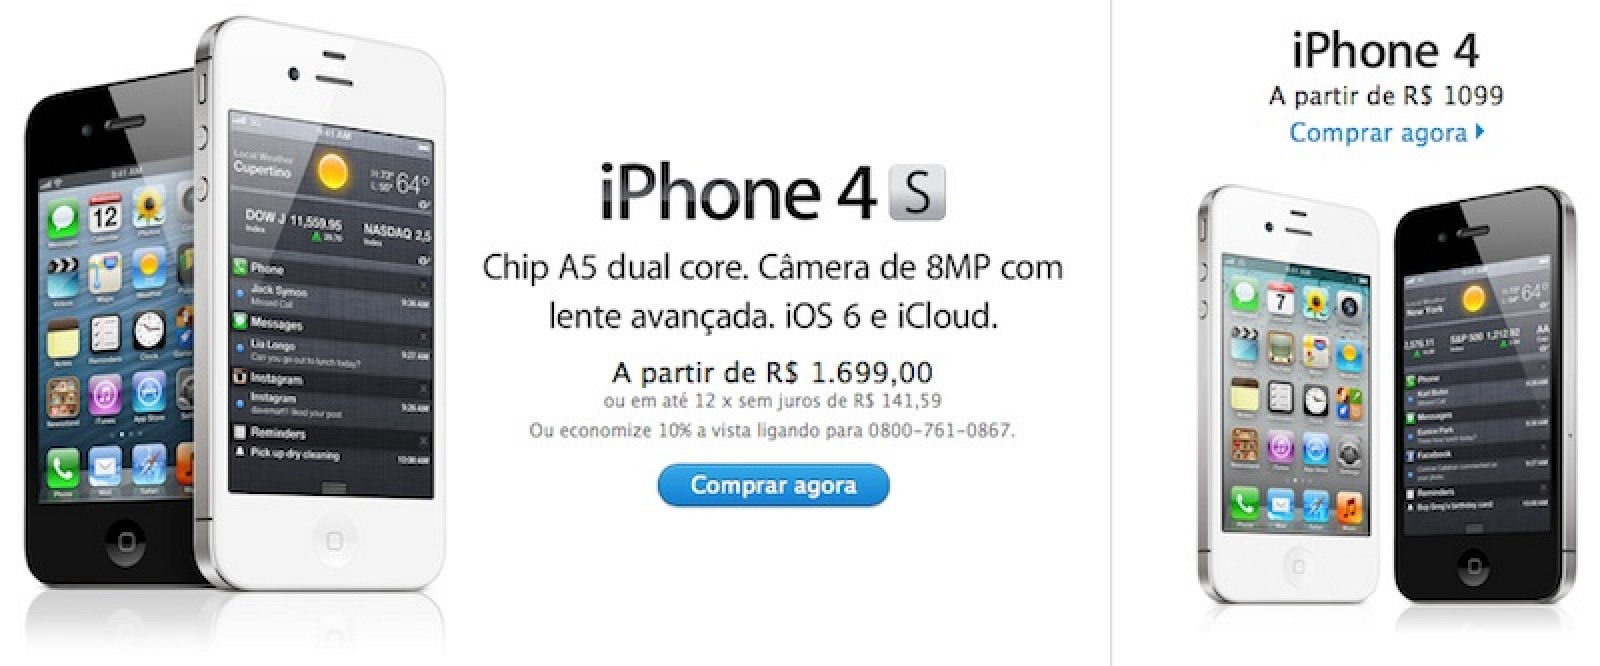 iPhone 4 Prices in Brazil